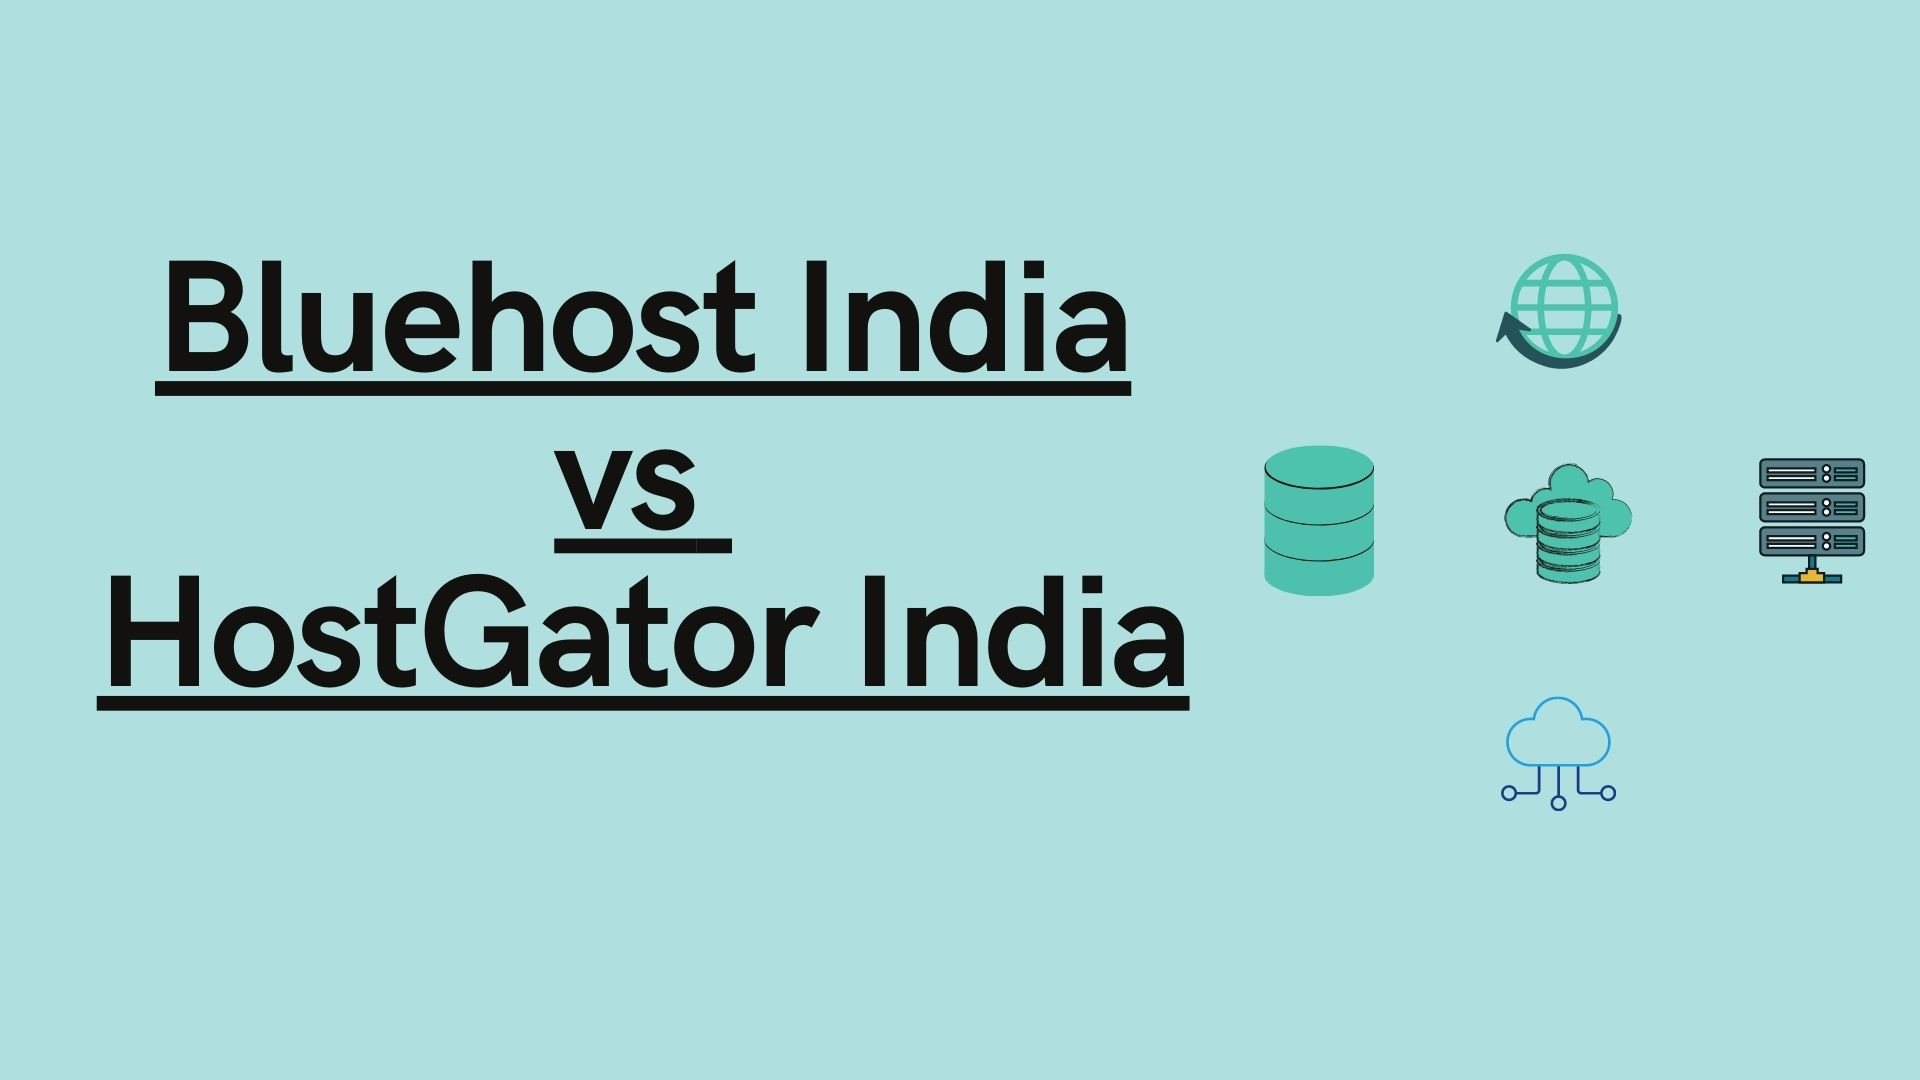 Bluehost India vs HostGator India